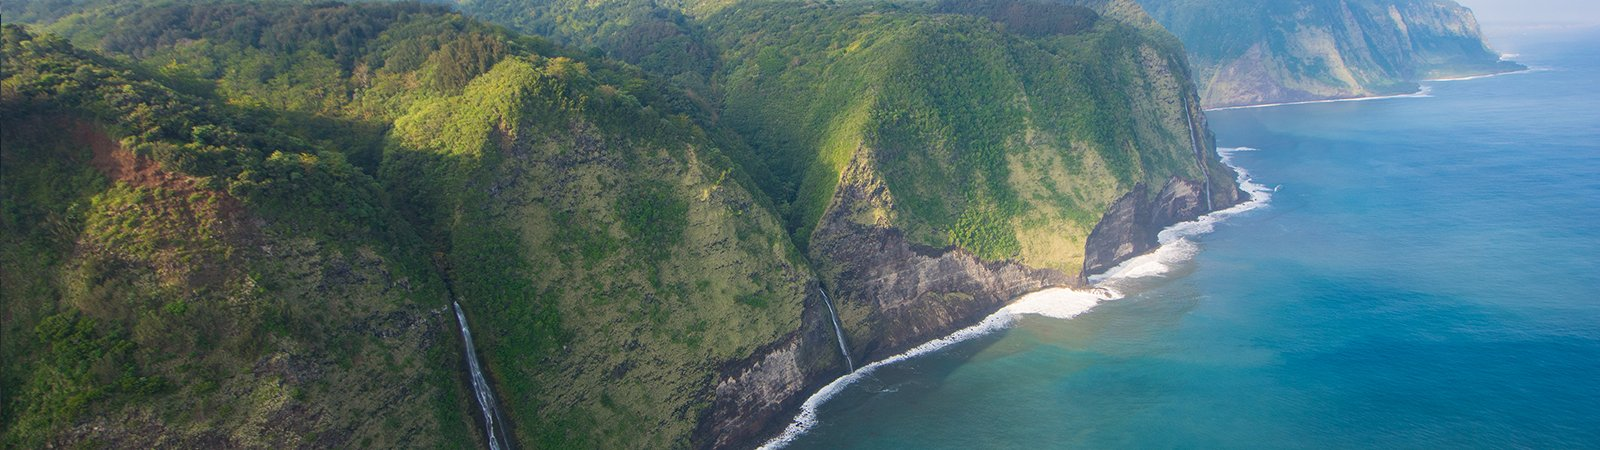 Big Island Visitor Guide